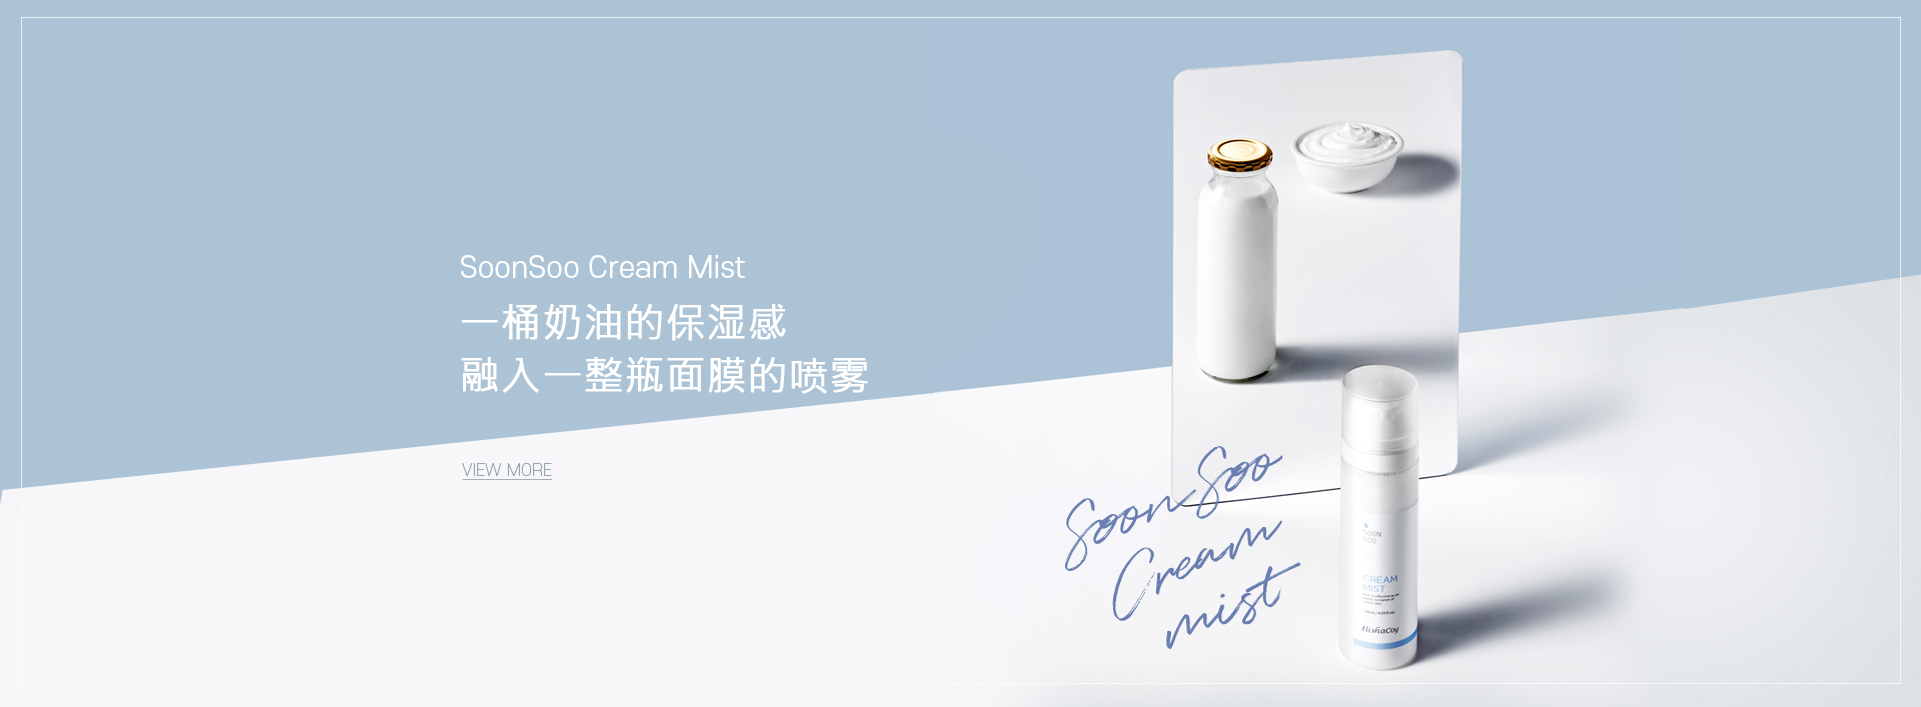 SOONSOO CREAM MIST